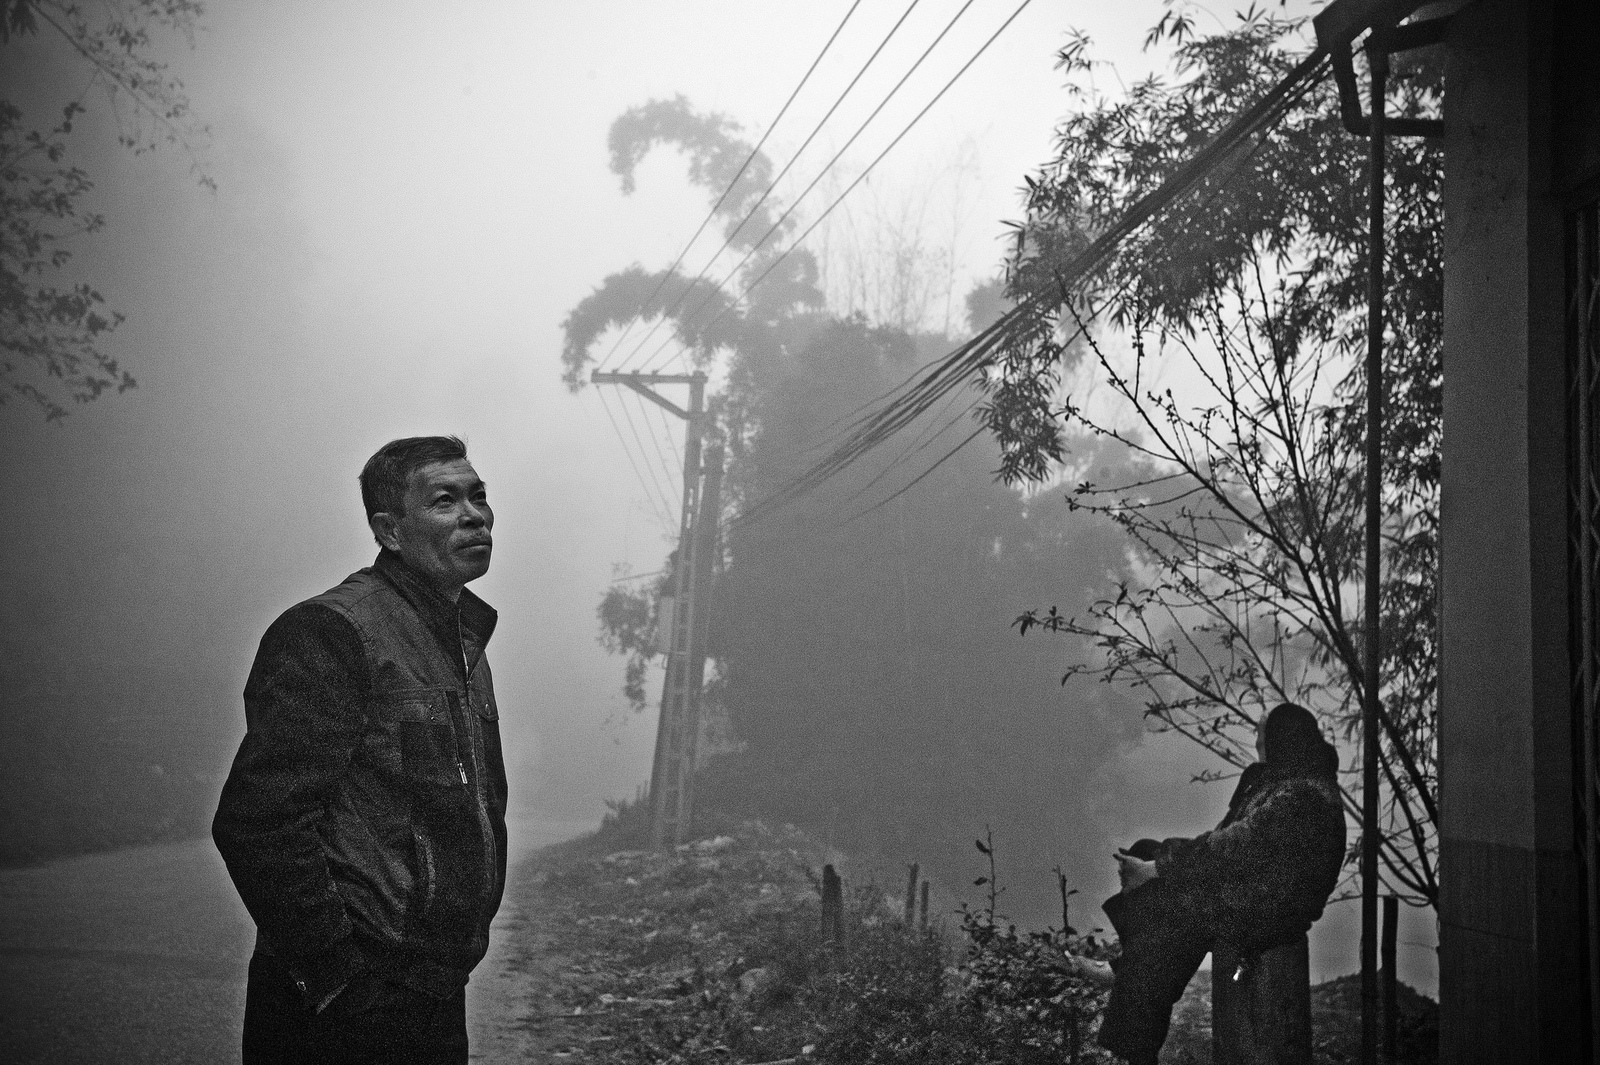 An early evening fog shrouds the outskirts of Sa Pa, northern Vietnam.